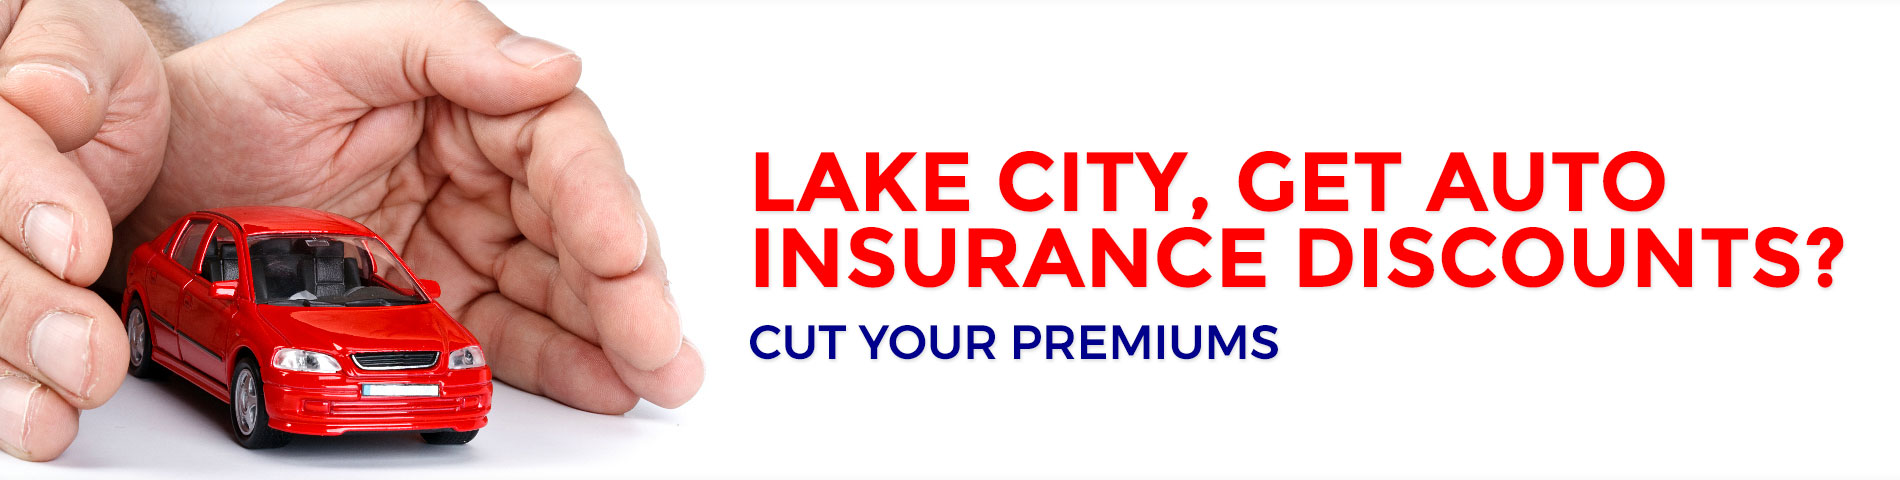 Dairyland Auto Insurance Quote Lake City Auto Insurance Quotes  Aai